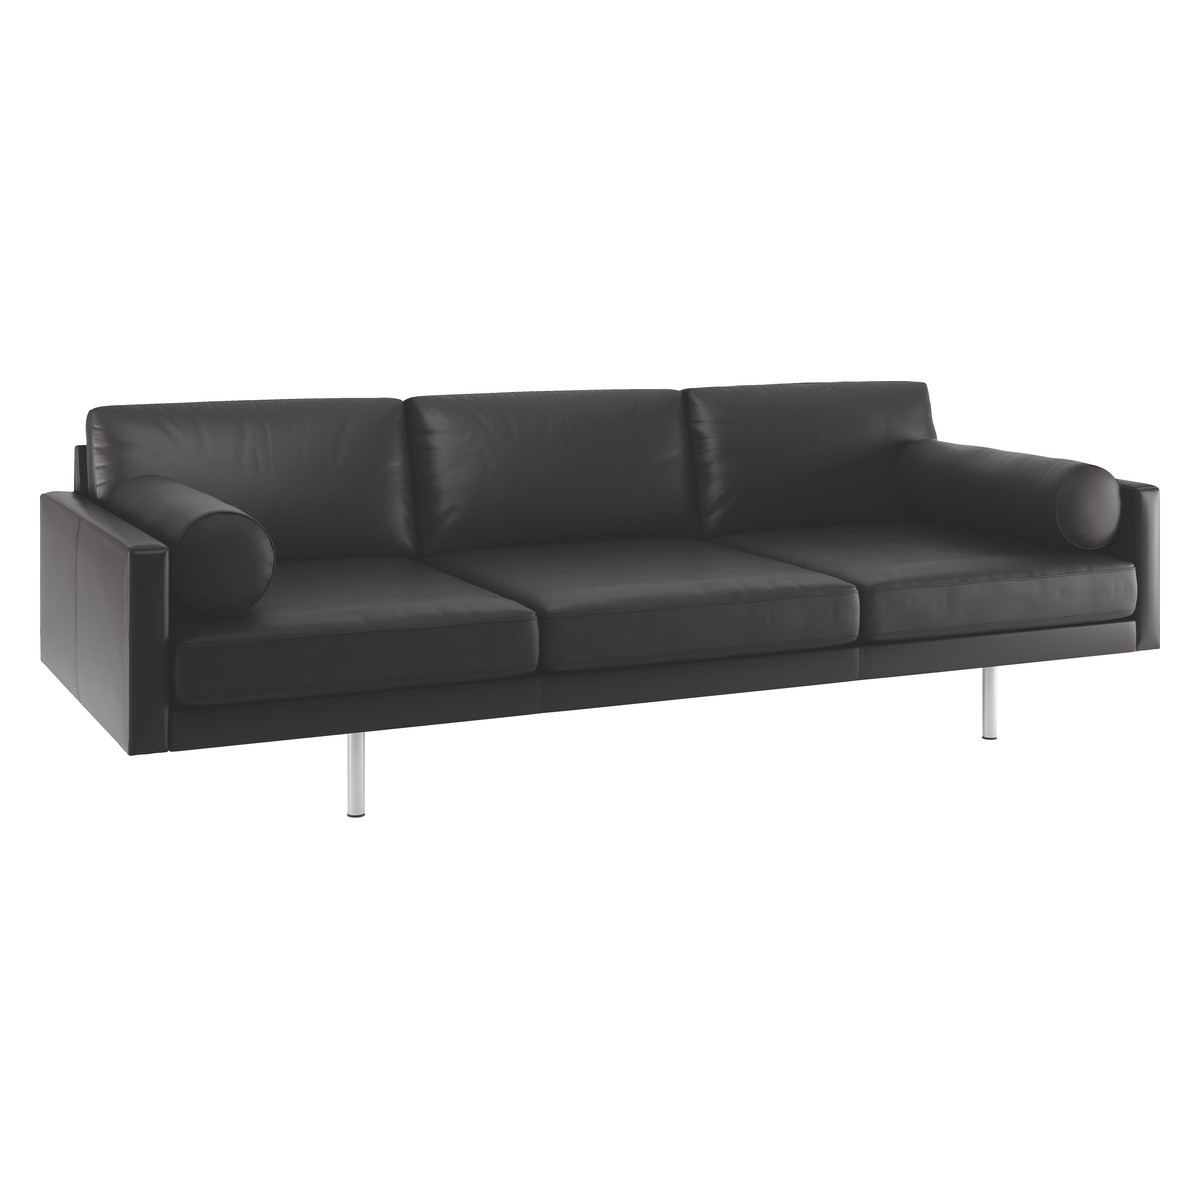 Spencer Black Leather 4 Seater Sofa Metal Legs Buy Now At With Four Seater Sofas (Image 14 of 15)